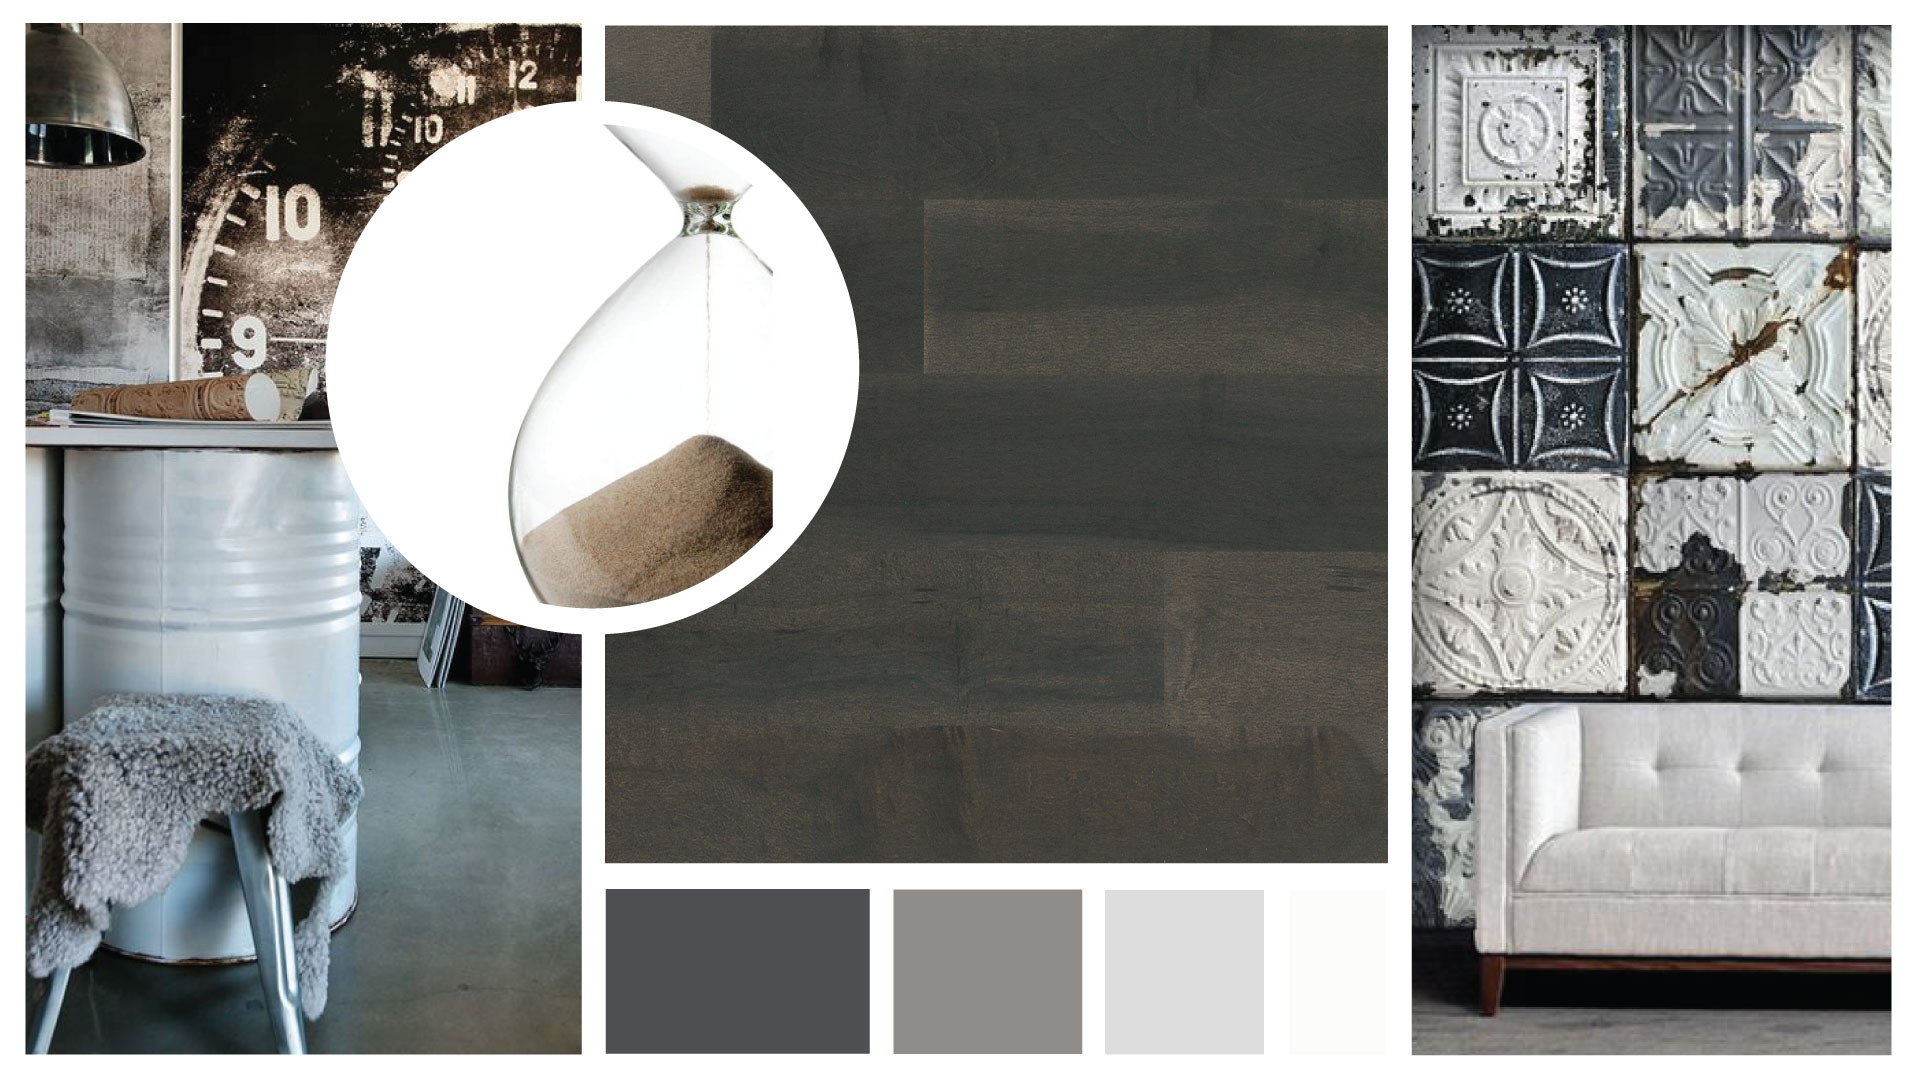 popular hardwood floor colors 2016 of 4 latest hardwood flooring trends lauzon flooring within organik floors have integrity their natural look and feel convey a sense of origin substance and history a sense of the legacy of the forest